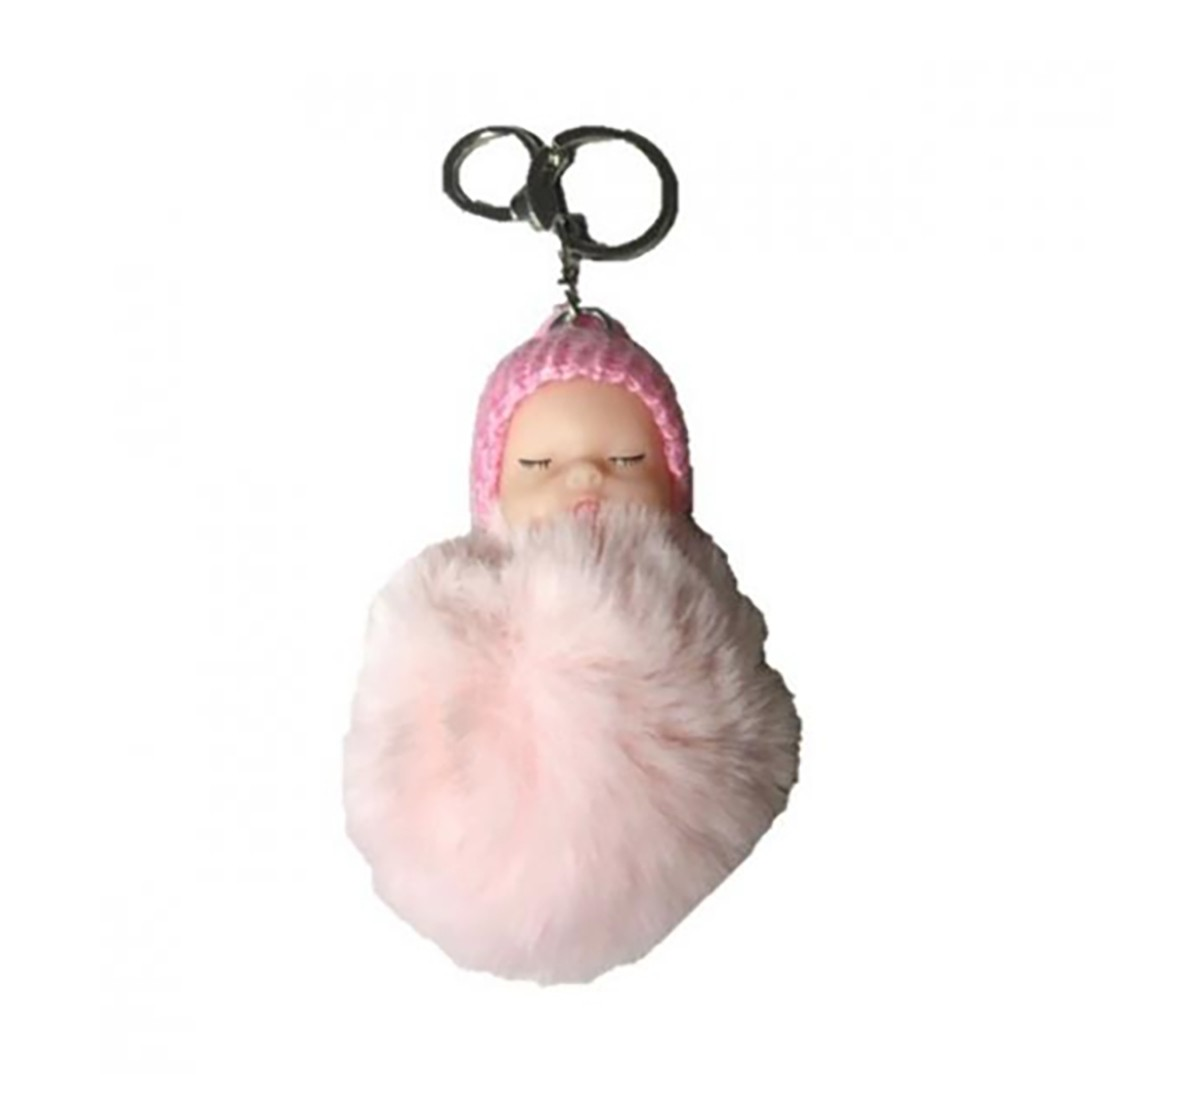 Luvley Pastel Pink Baby Pompom Keyring Toileteries and Makeup for Girls age 3Y+